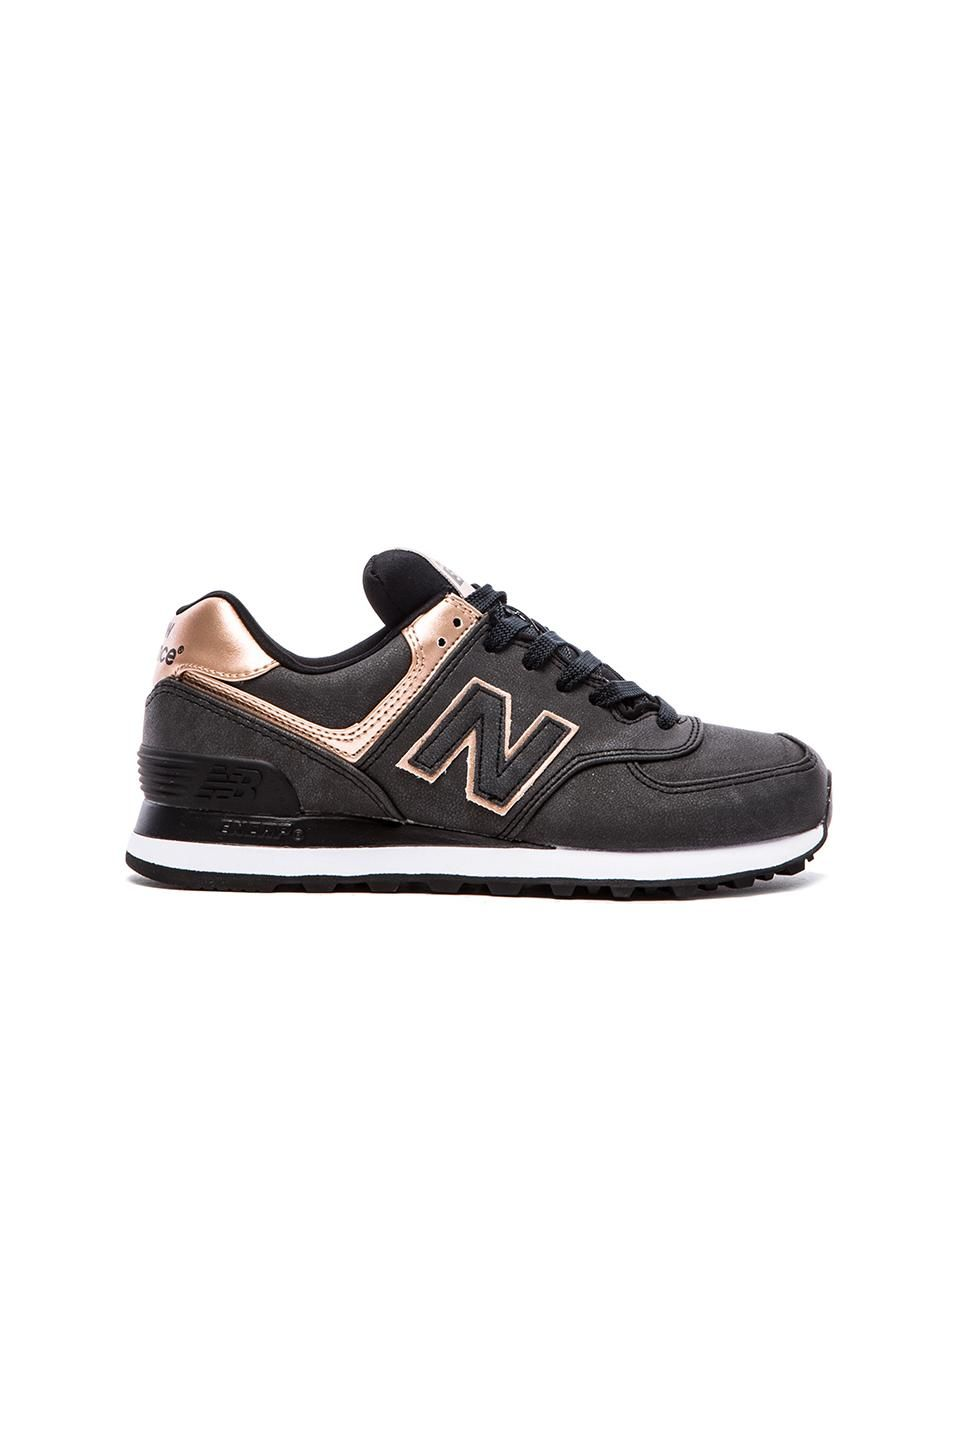 new balance rose gold shoes - Just bought these for long walks and ...